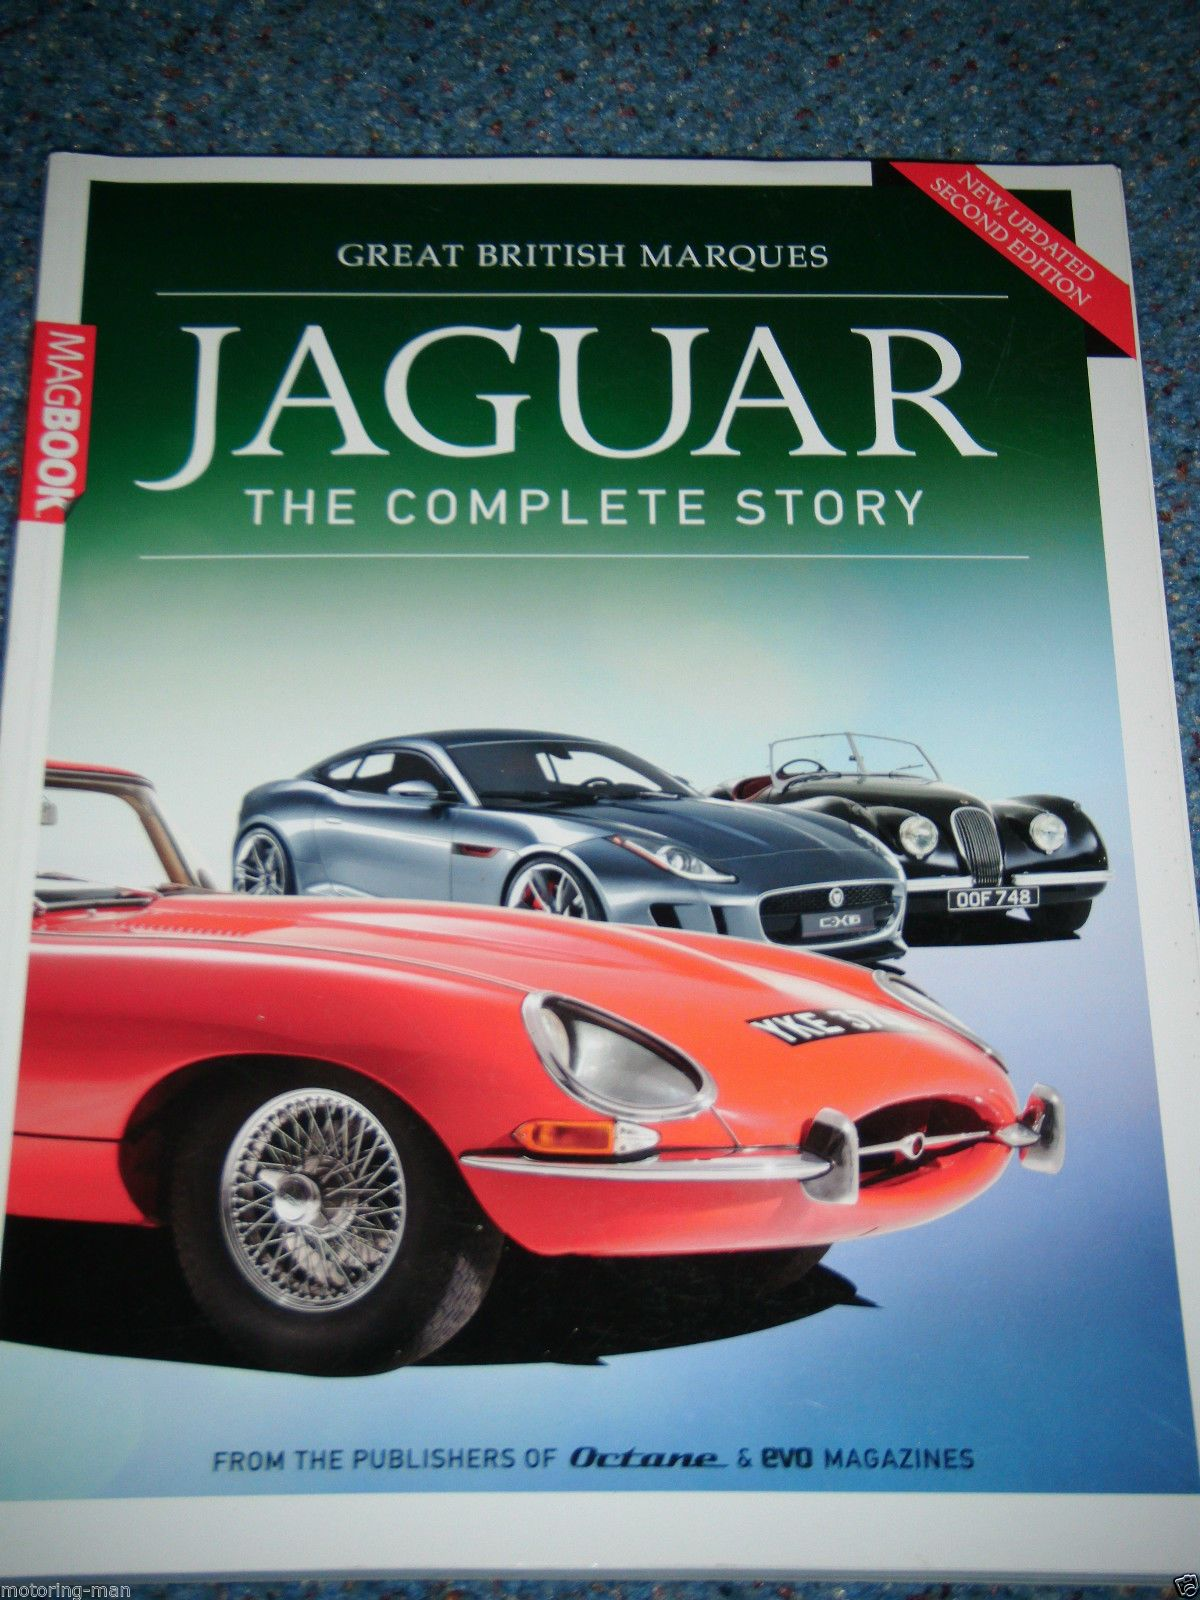 e on by cars jaguar parts source heritage of future the workshop zero electric type lightweight